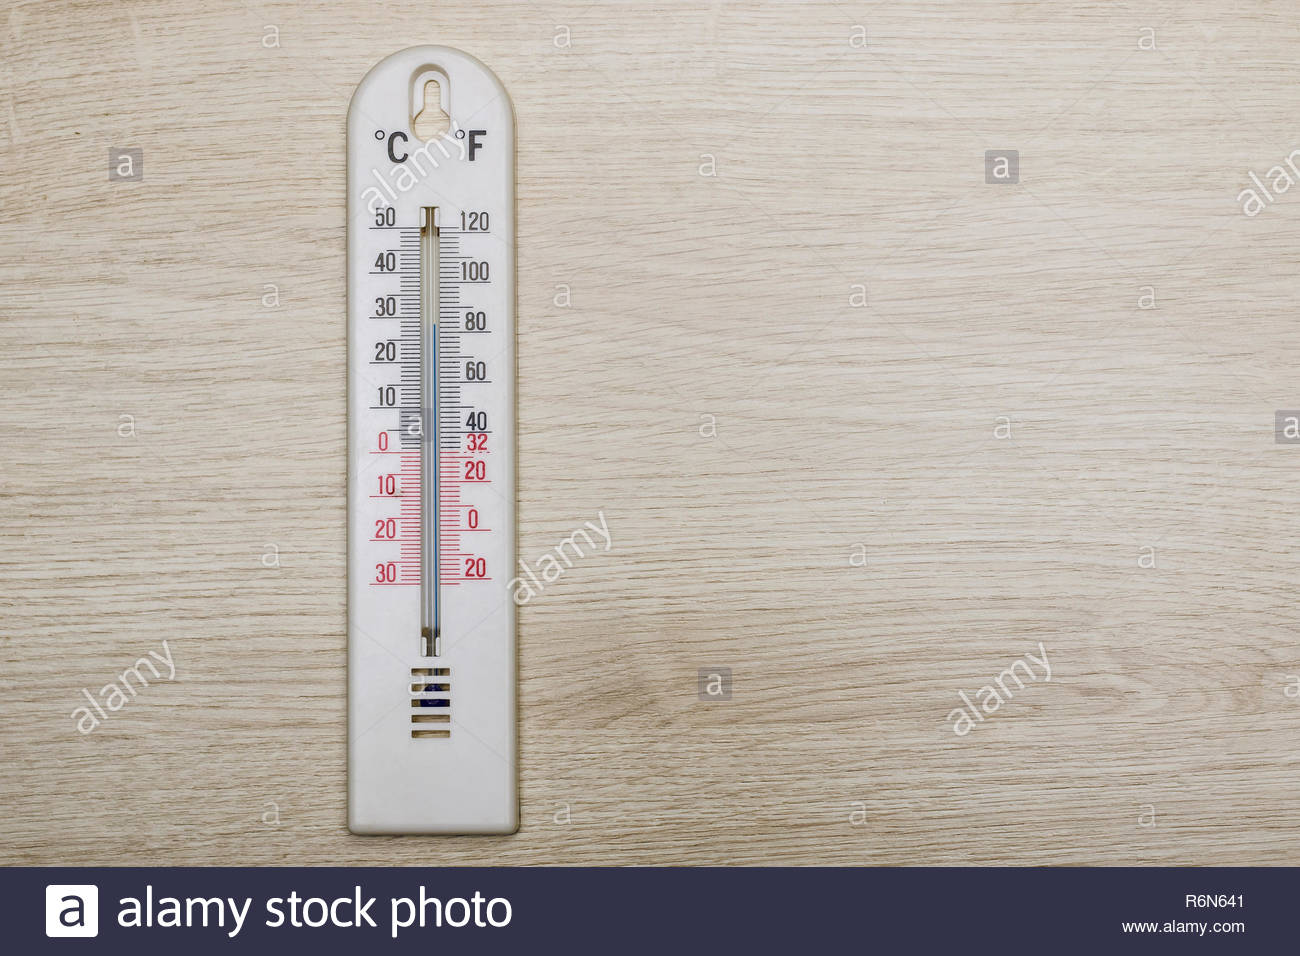 White room thermometer on wooden background - Stock Image